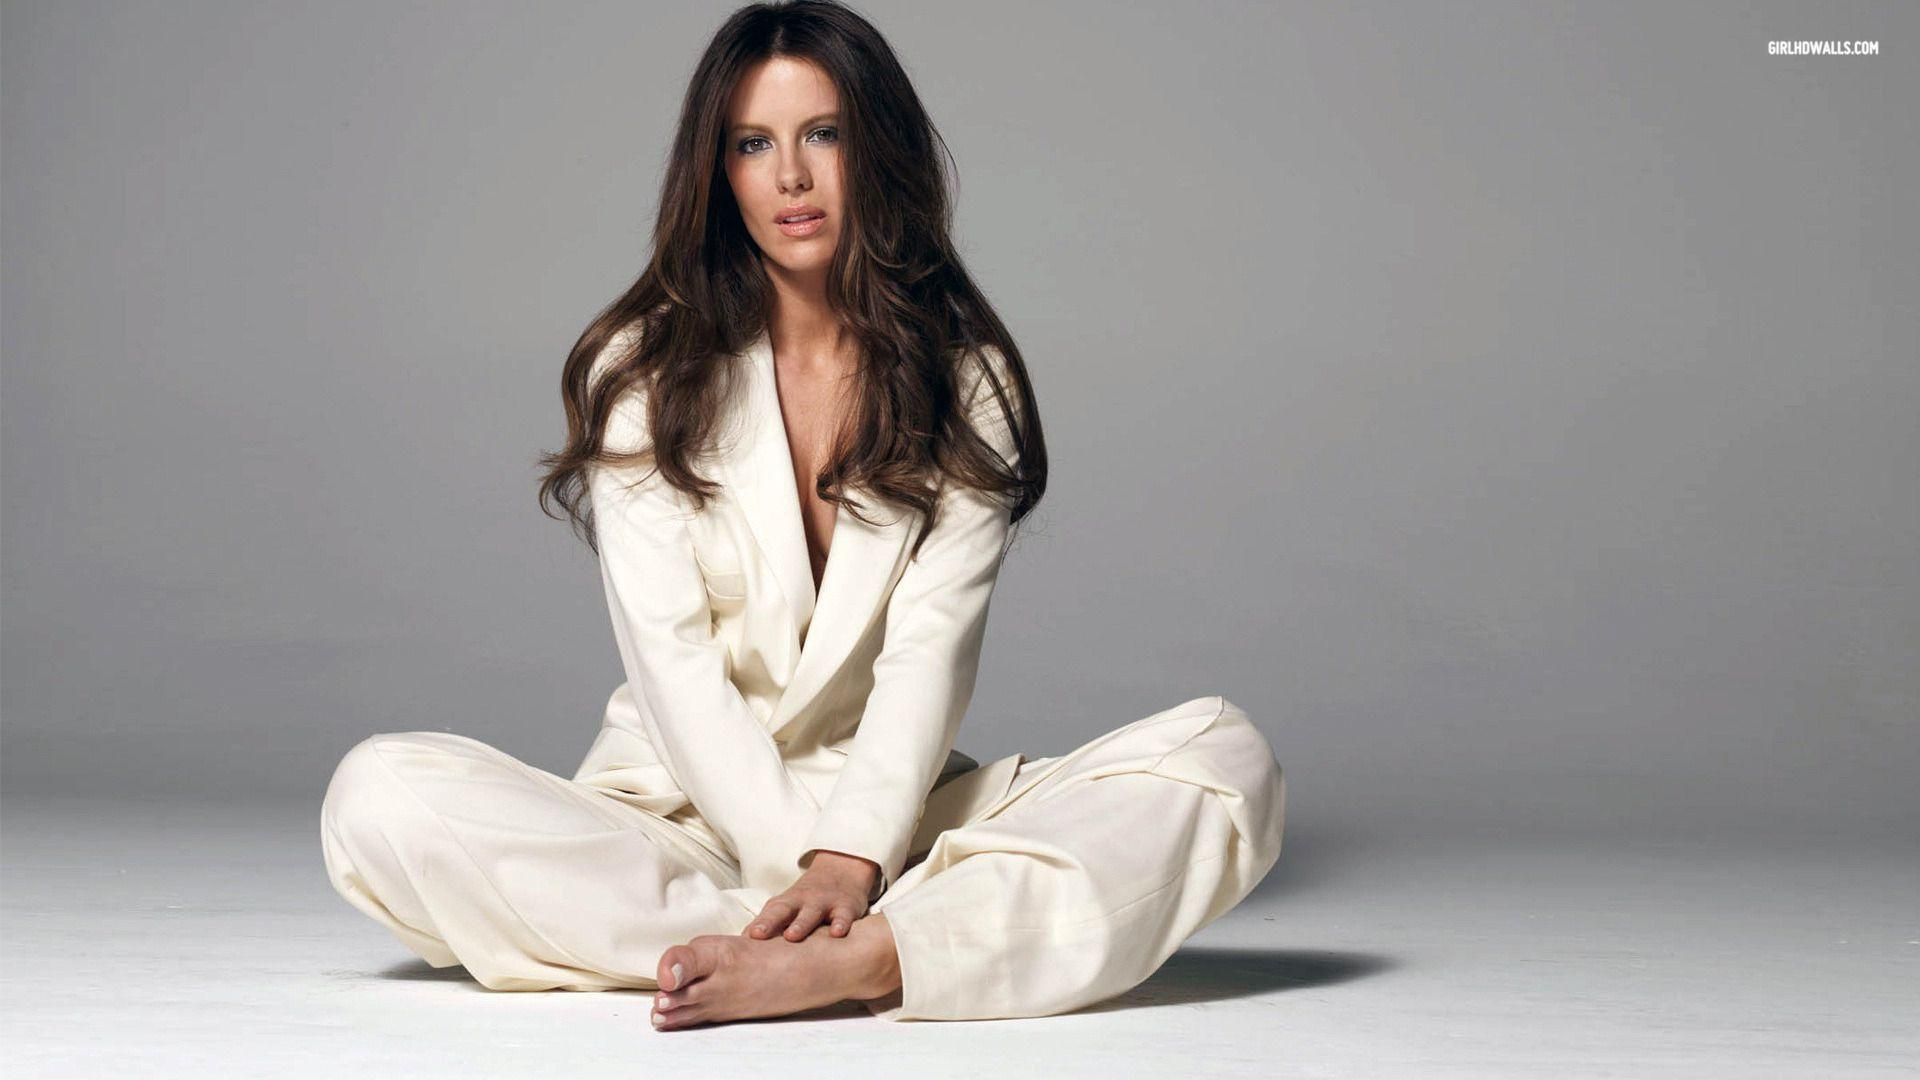 kate beckinsale wallpapers hd wallpaper cave